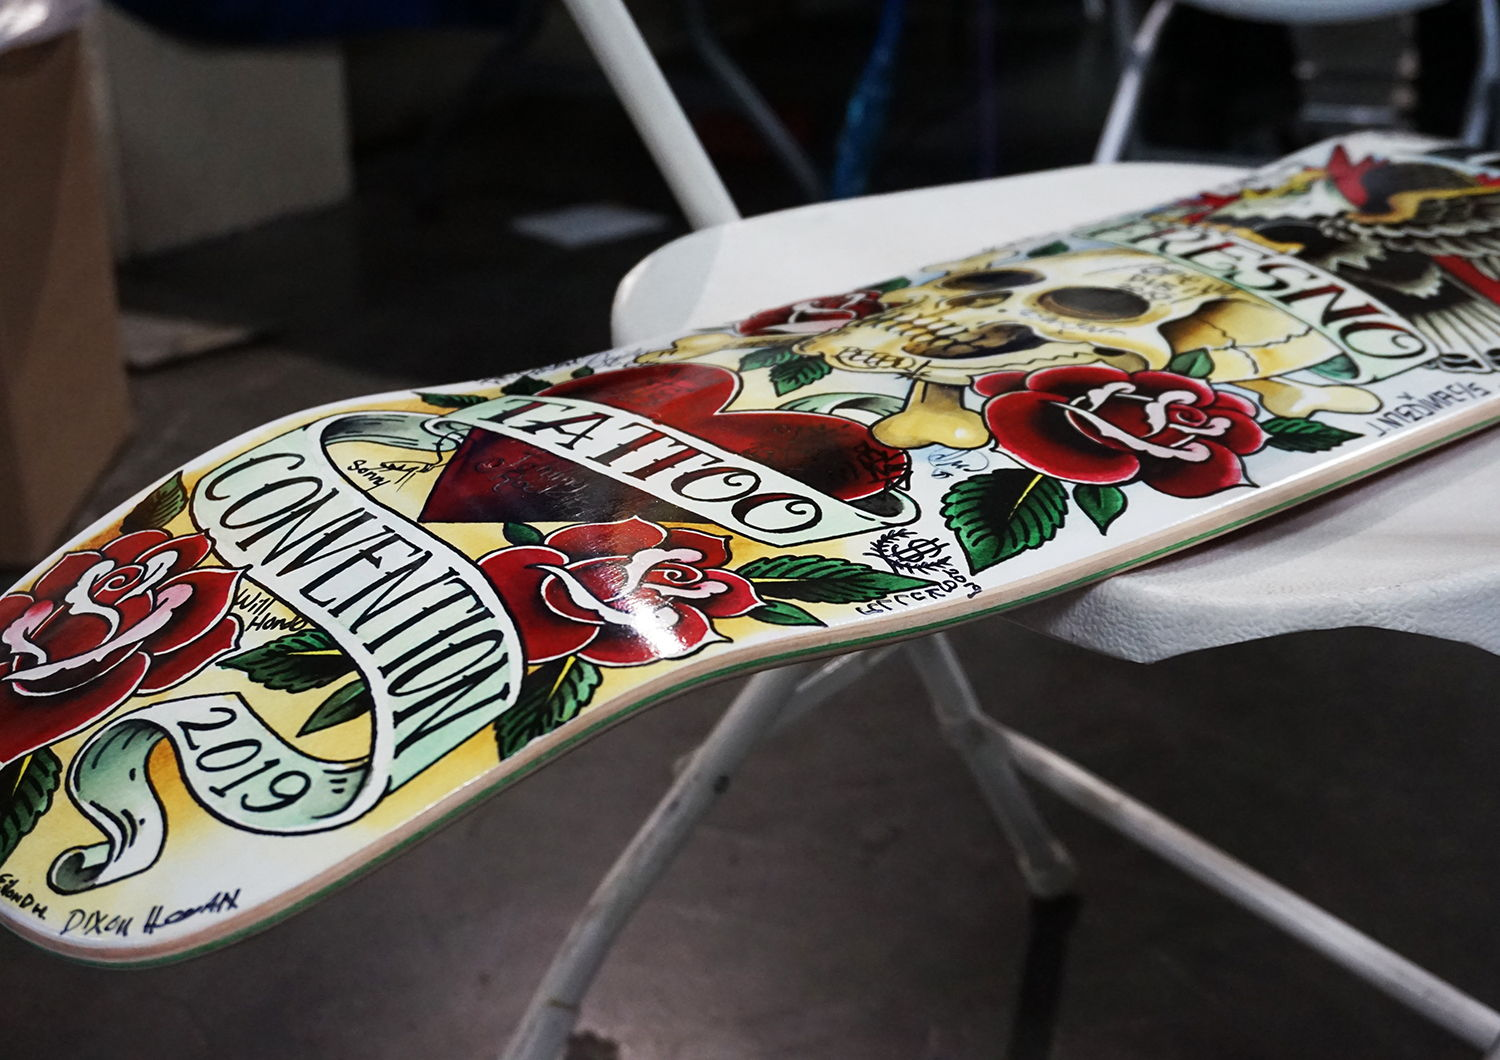 fresno tattoo convention skateboard